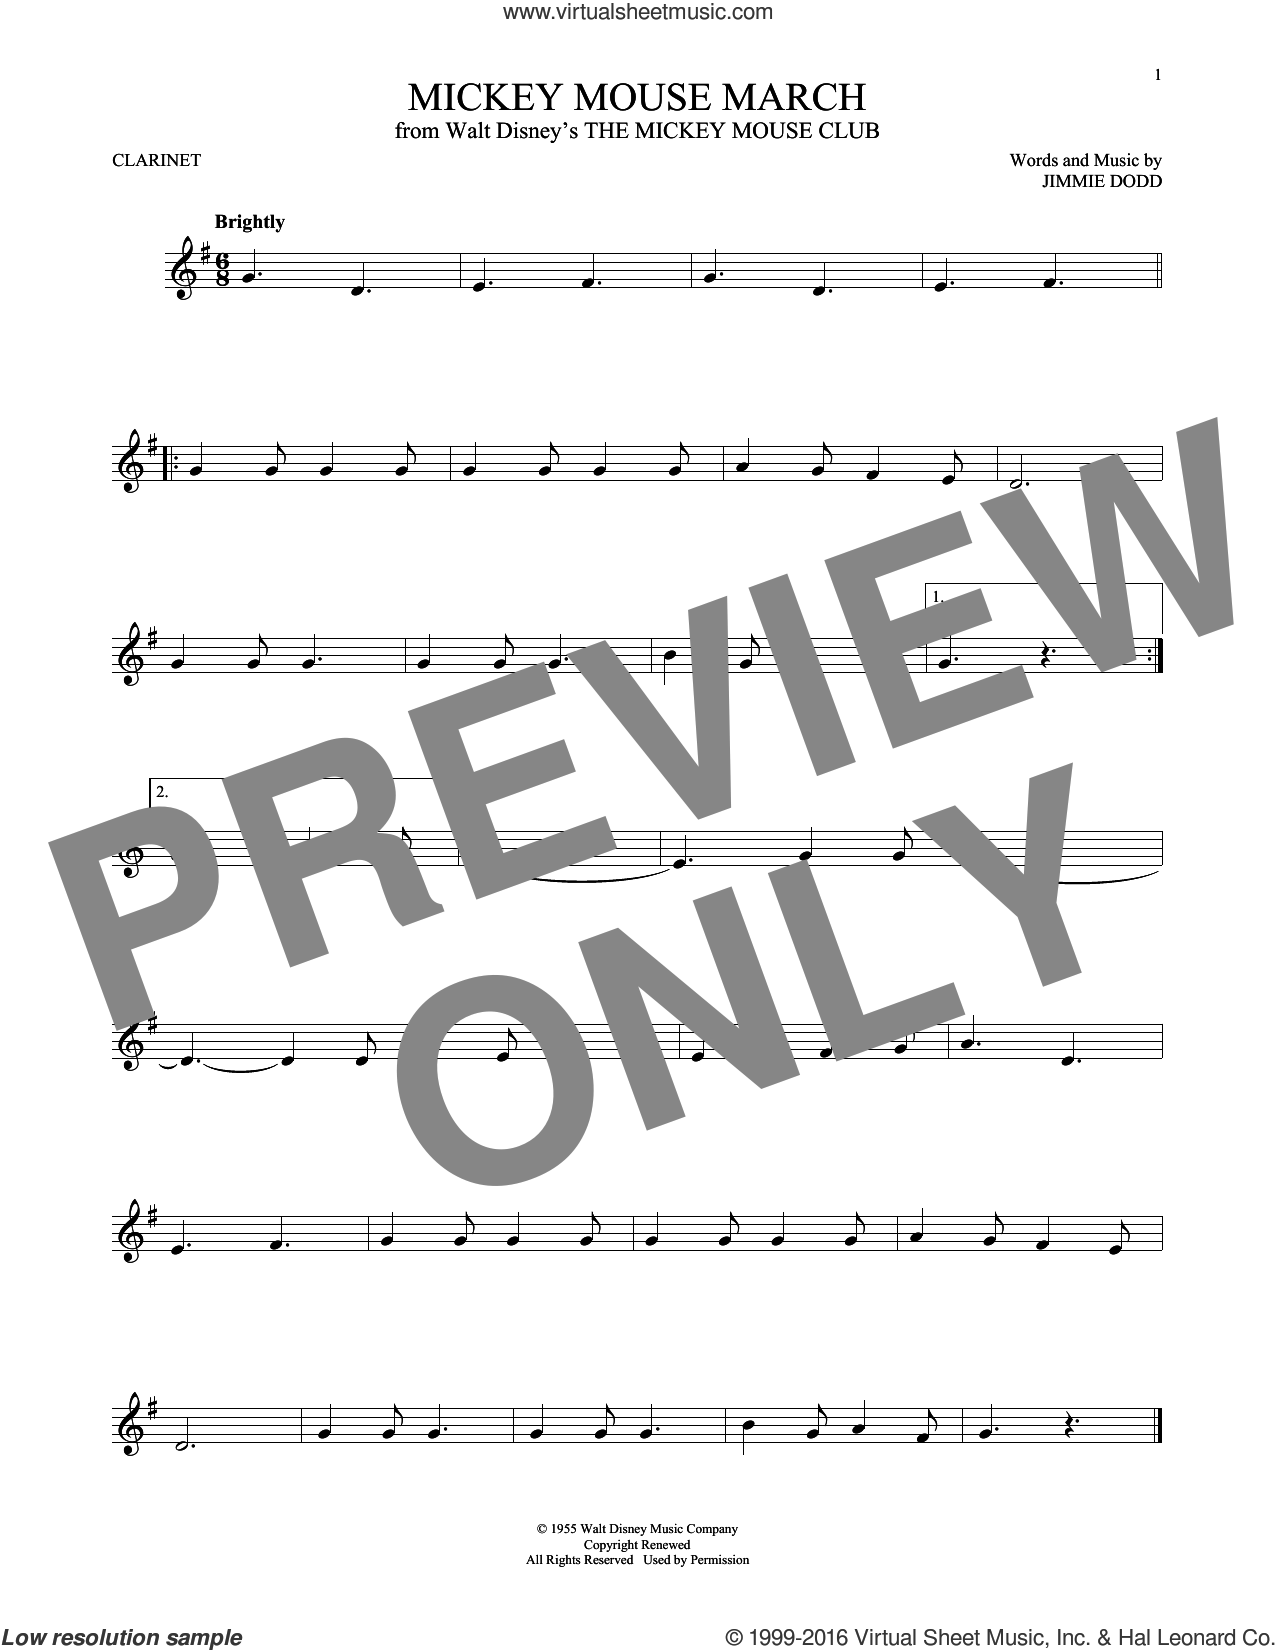 Mickey Mouse March sheet music for clarinet solo by Jimmie Dodd, intermediate skill level